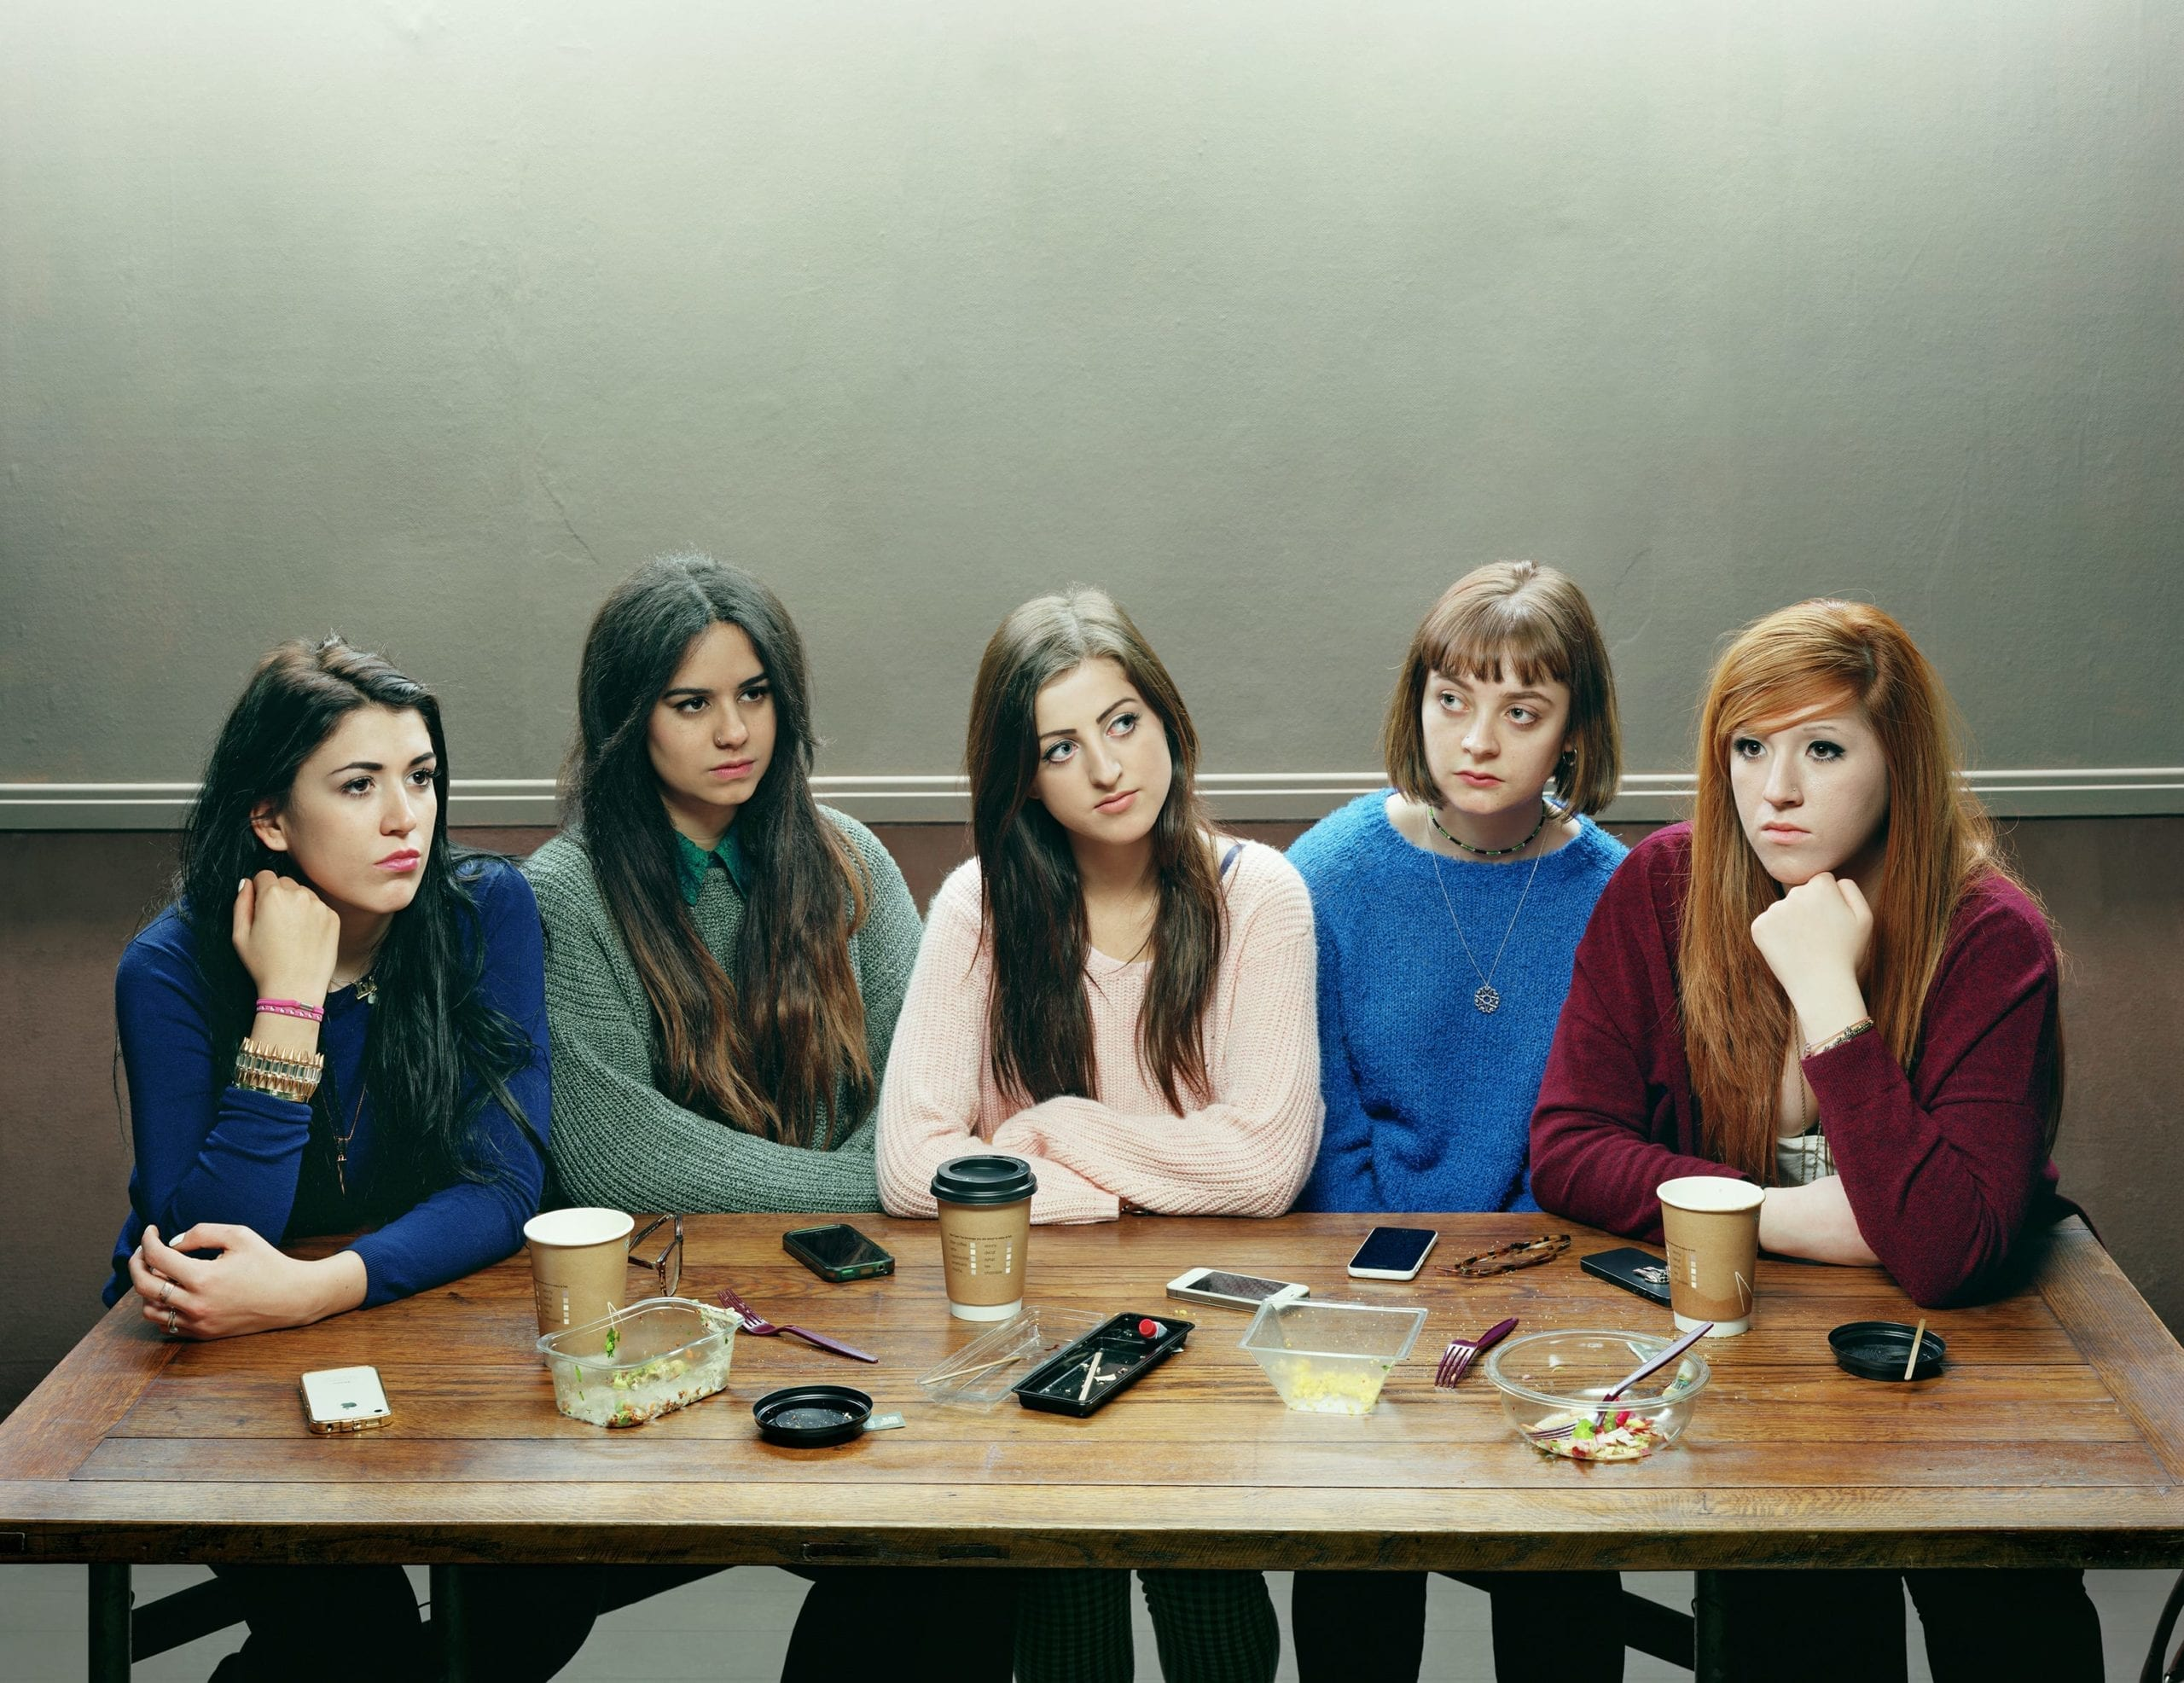 Five Girls 2014 by David Stewart © David Stewart